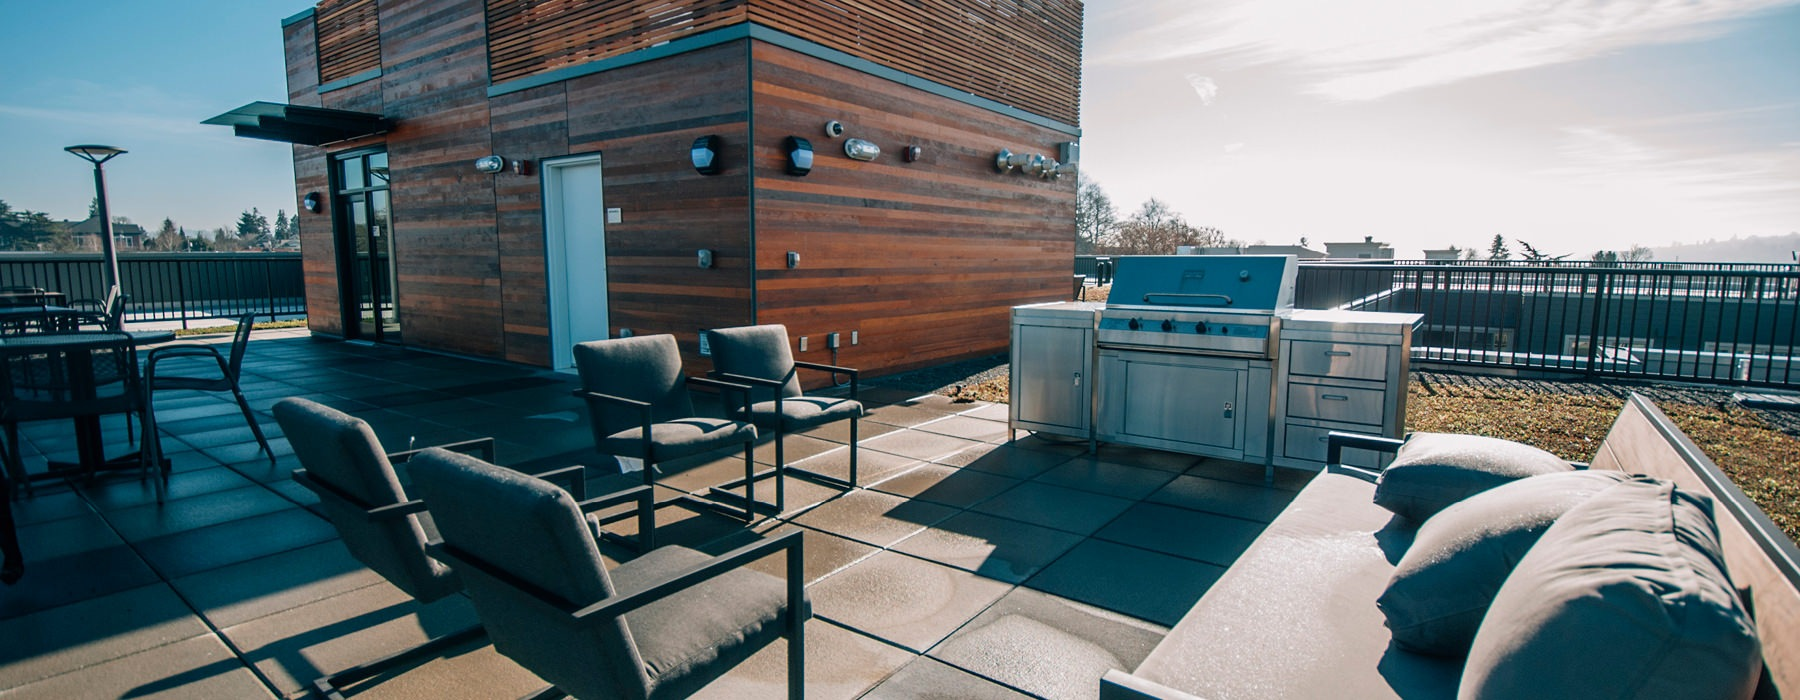 rooftop terrace with grill area